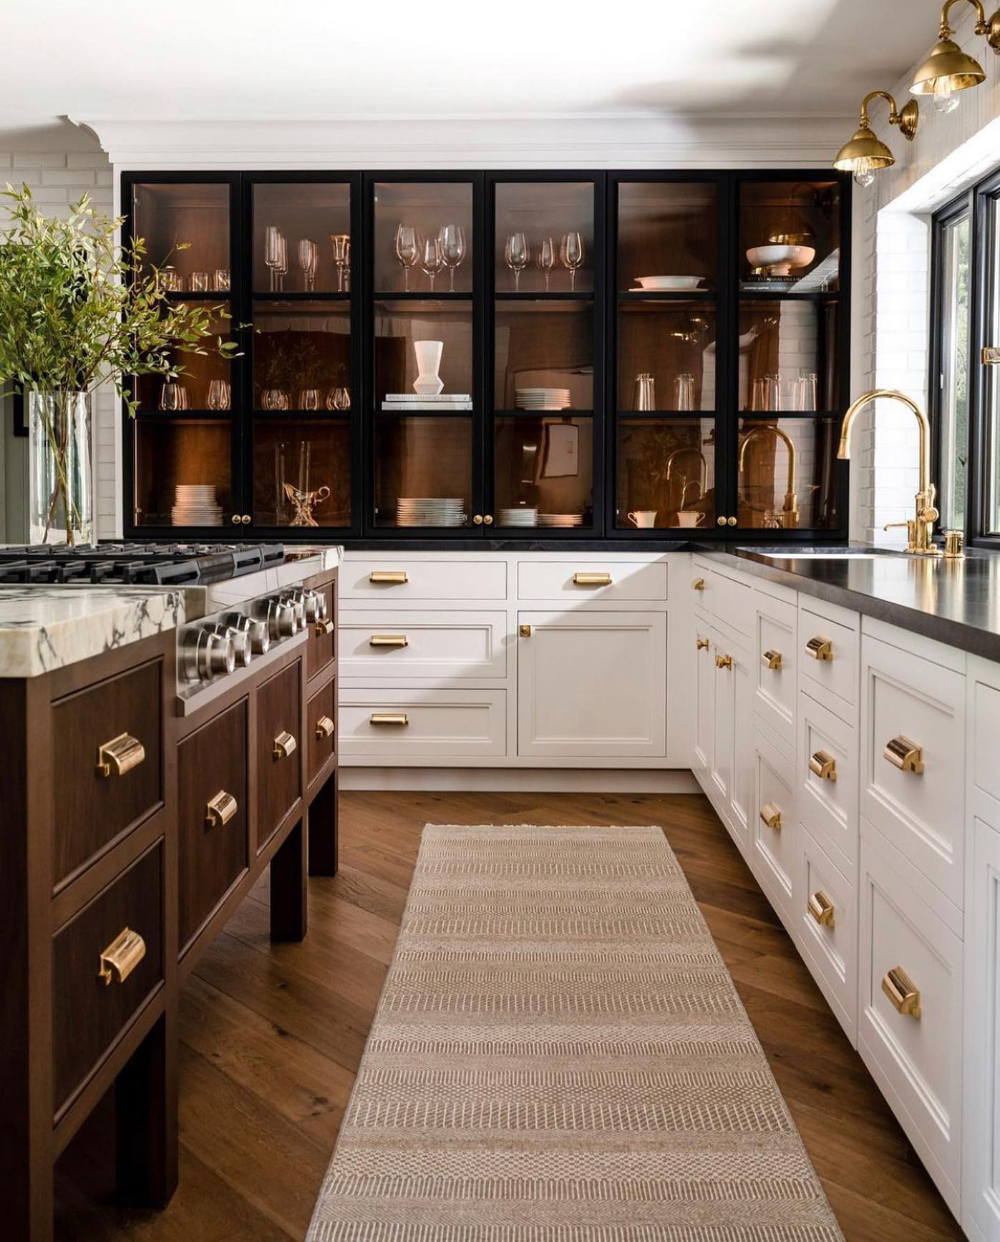 2021 Kitchen Trends You Don't Want to Miss